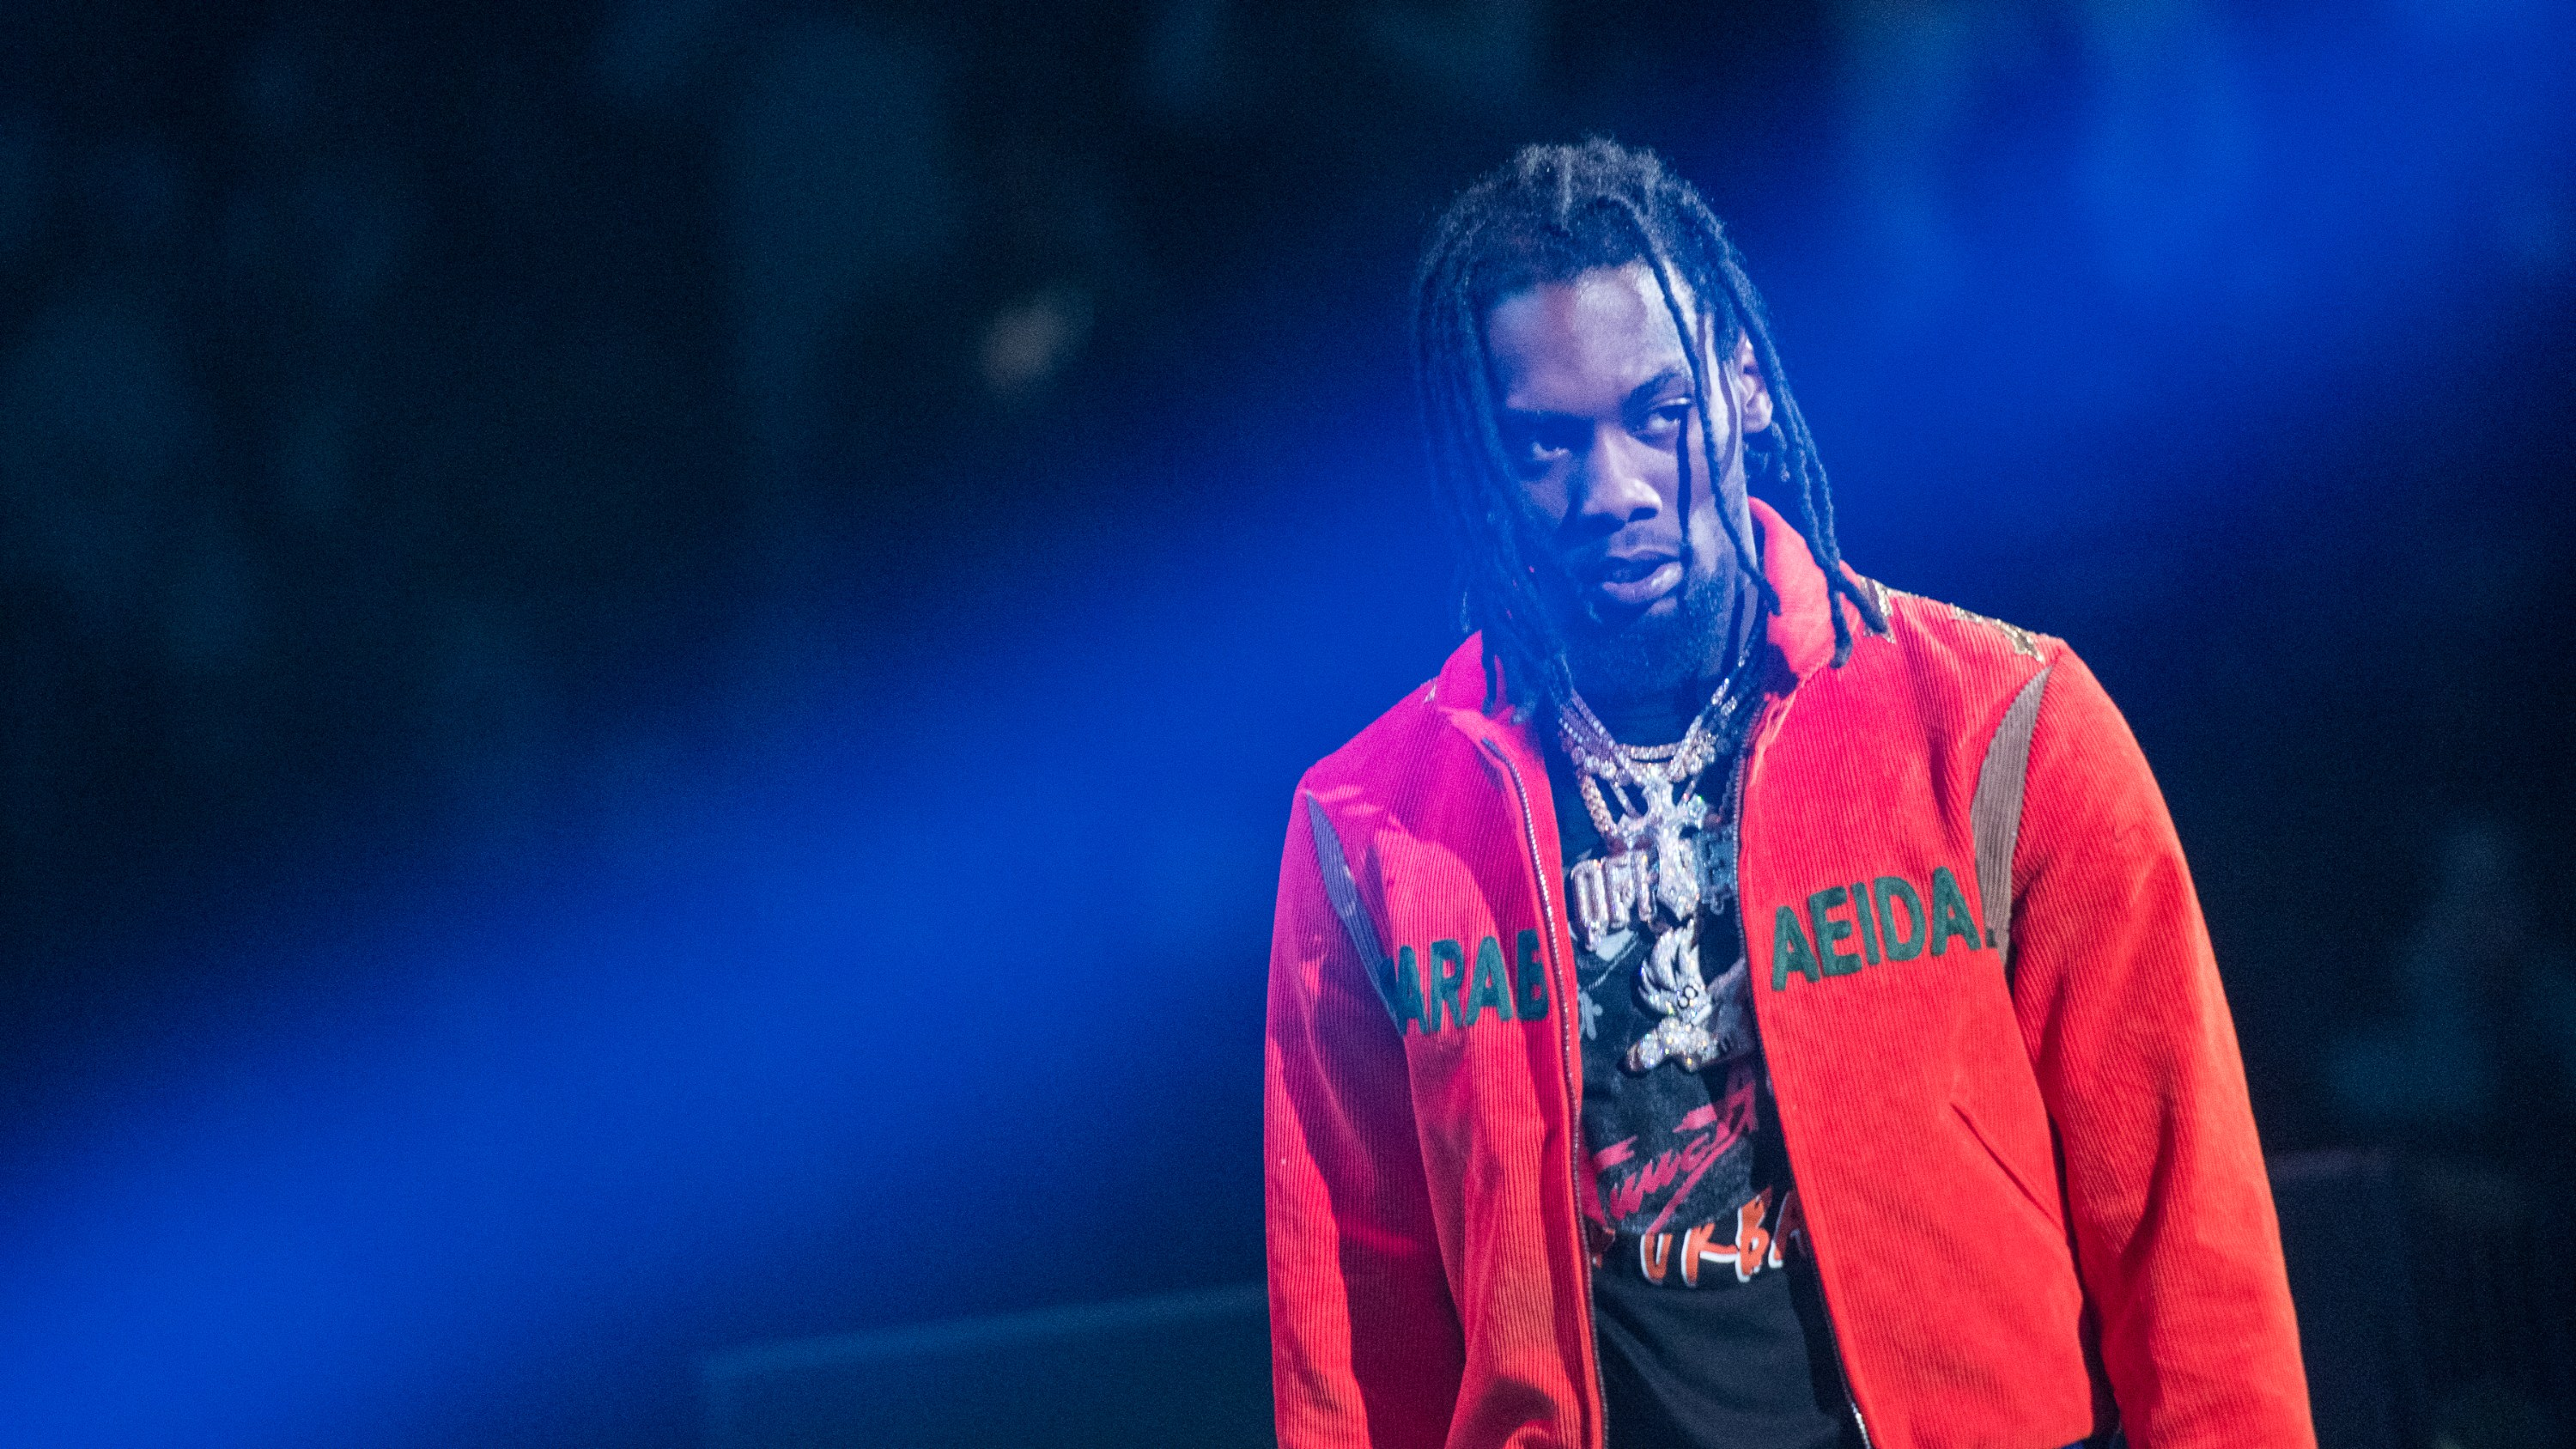 Offset To Produce & Judge Streetwear Competition The Hype For HBO Max  Deadline